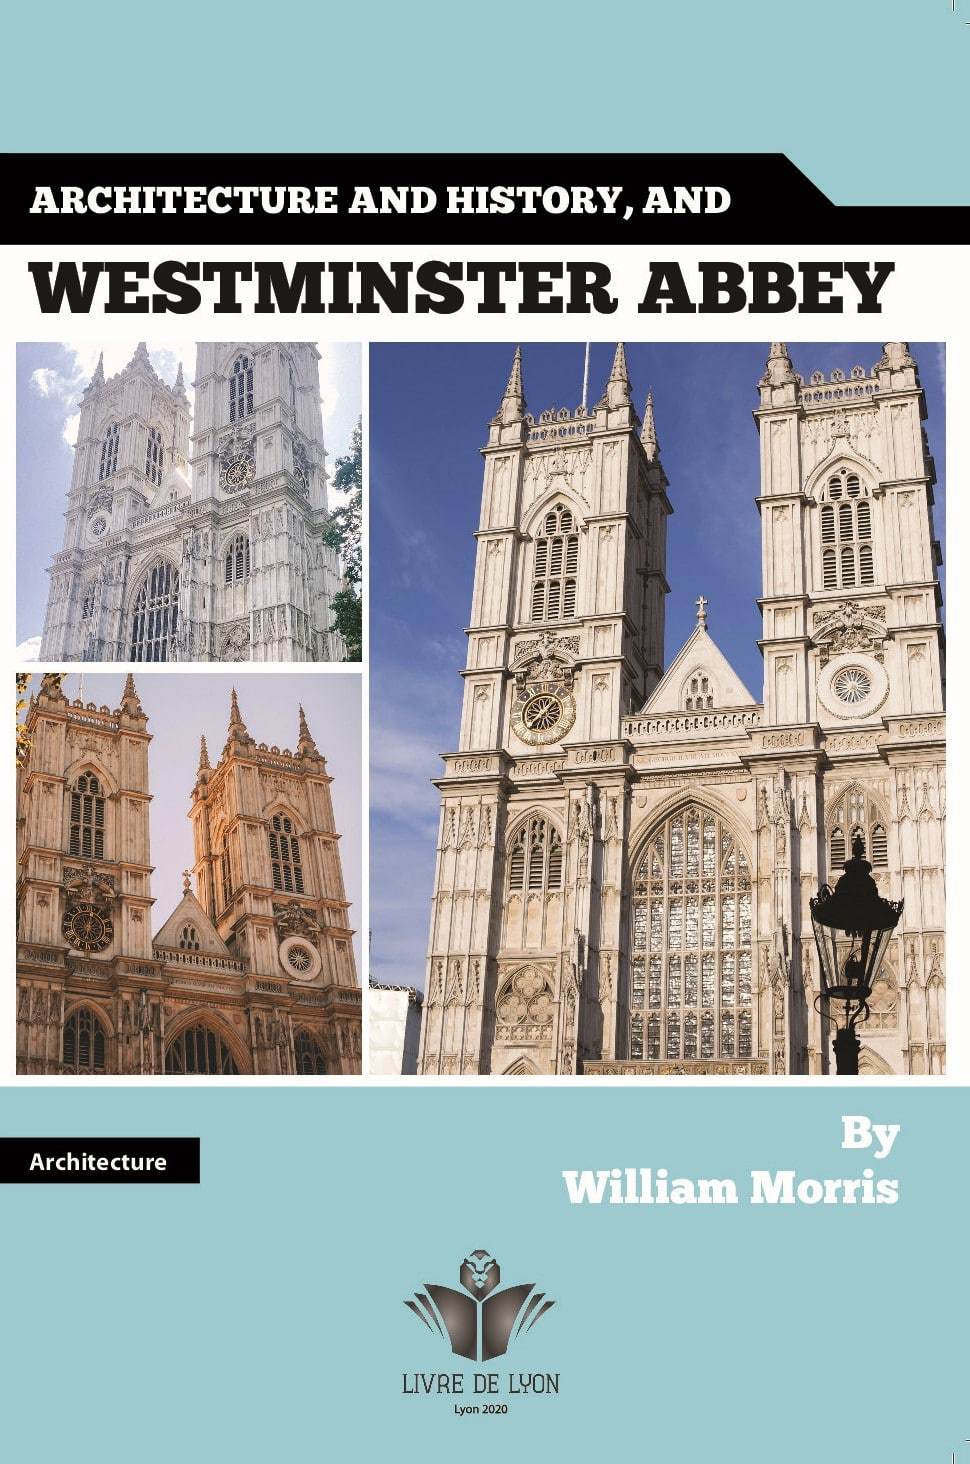 Architecture and history, and Westminster Abbey